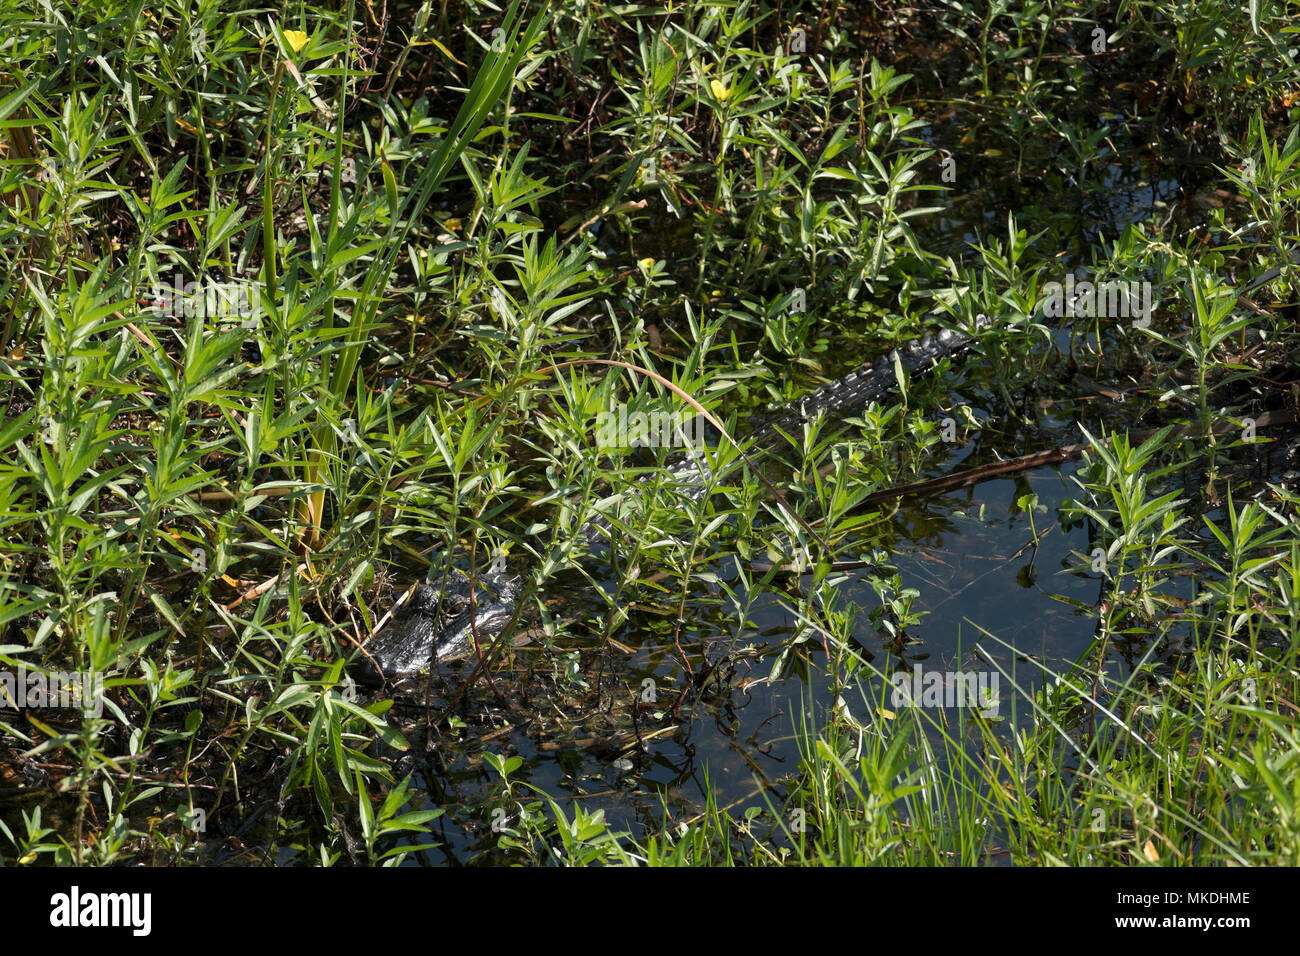 Young Wild Alligator in swamp waters Florida, USA Stock Photo